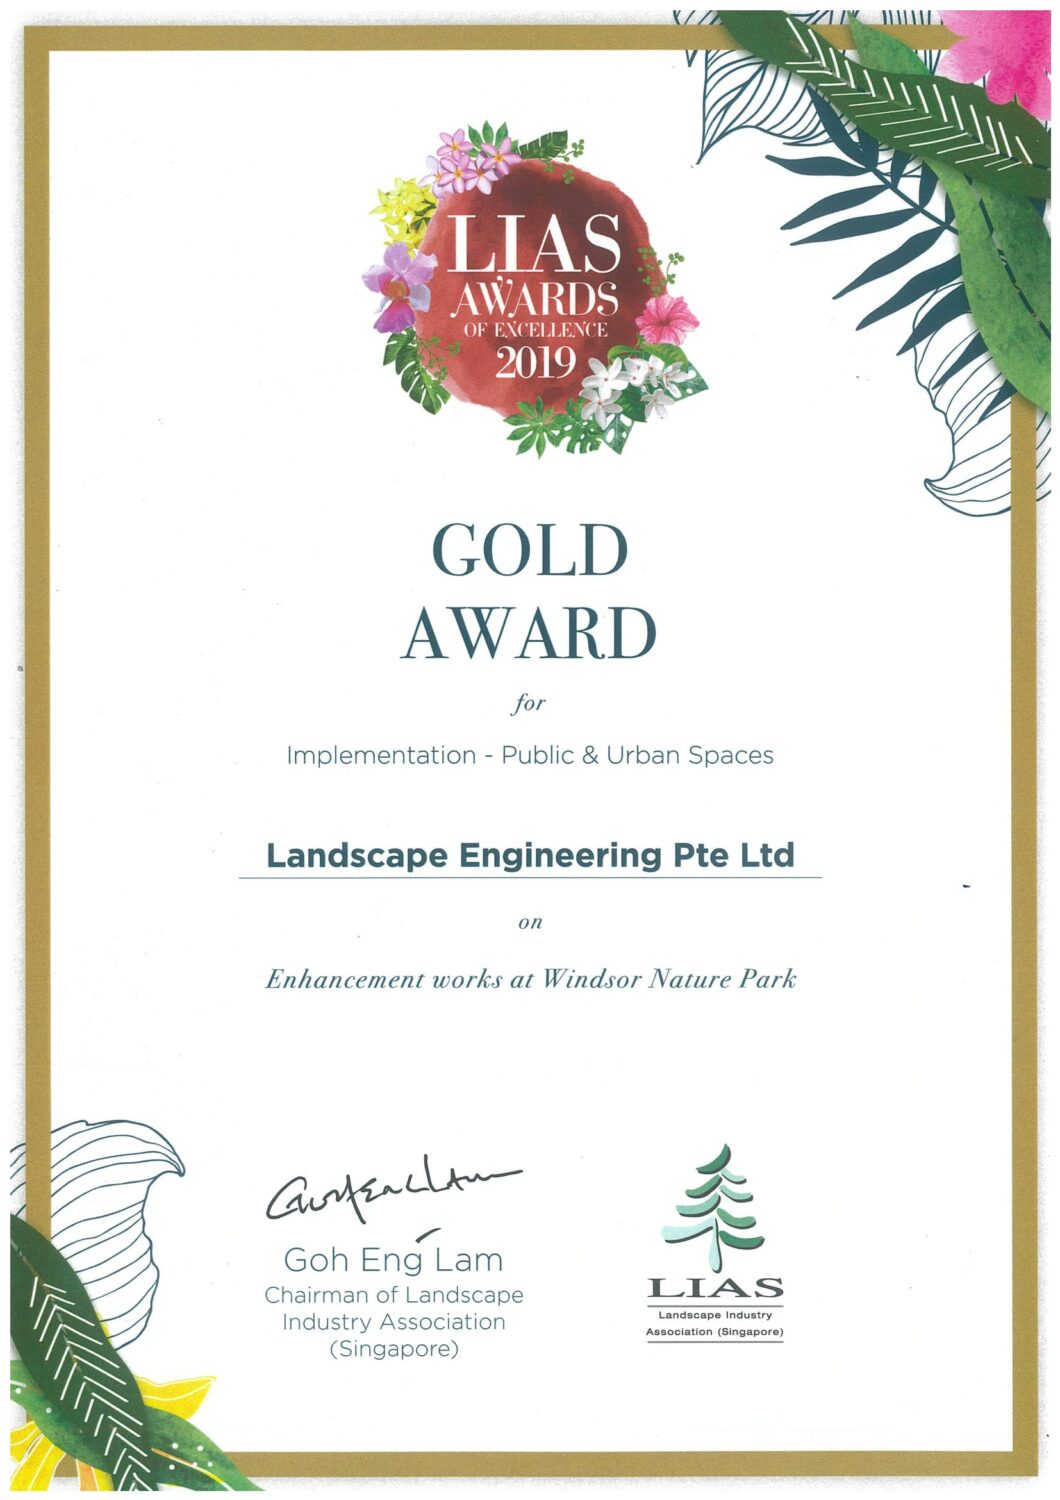 LIAS-AWARDS-2019-WINDSOR-NATURE-PARK